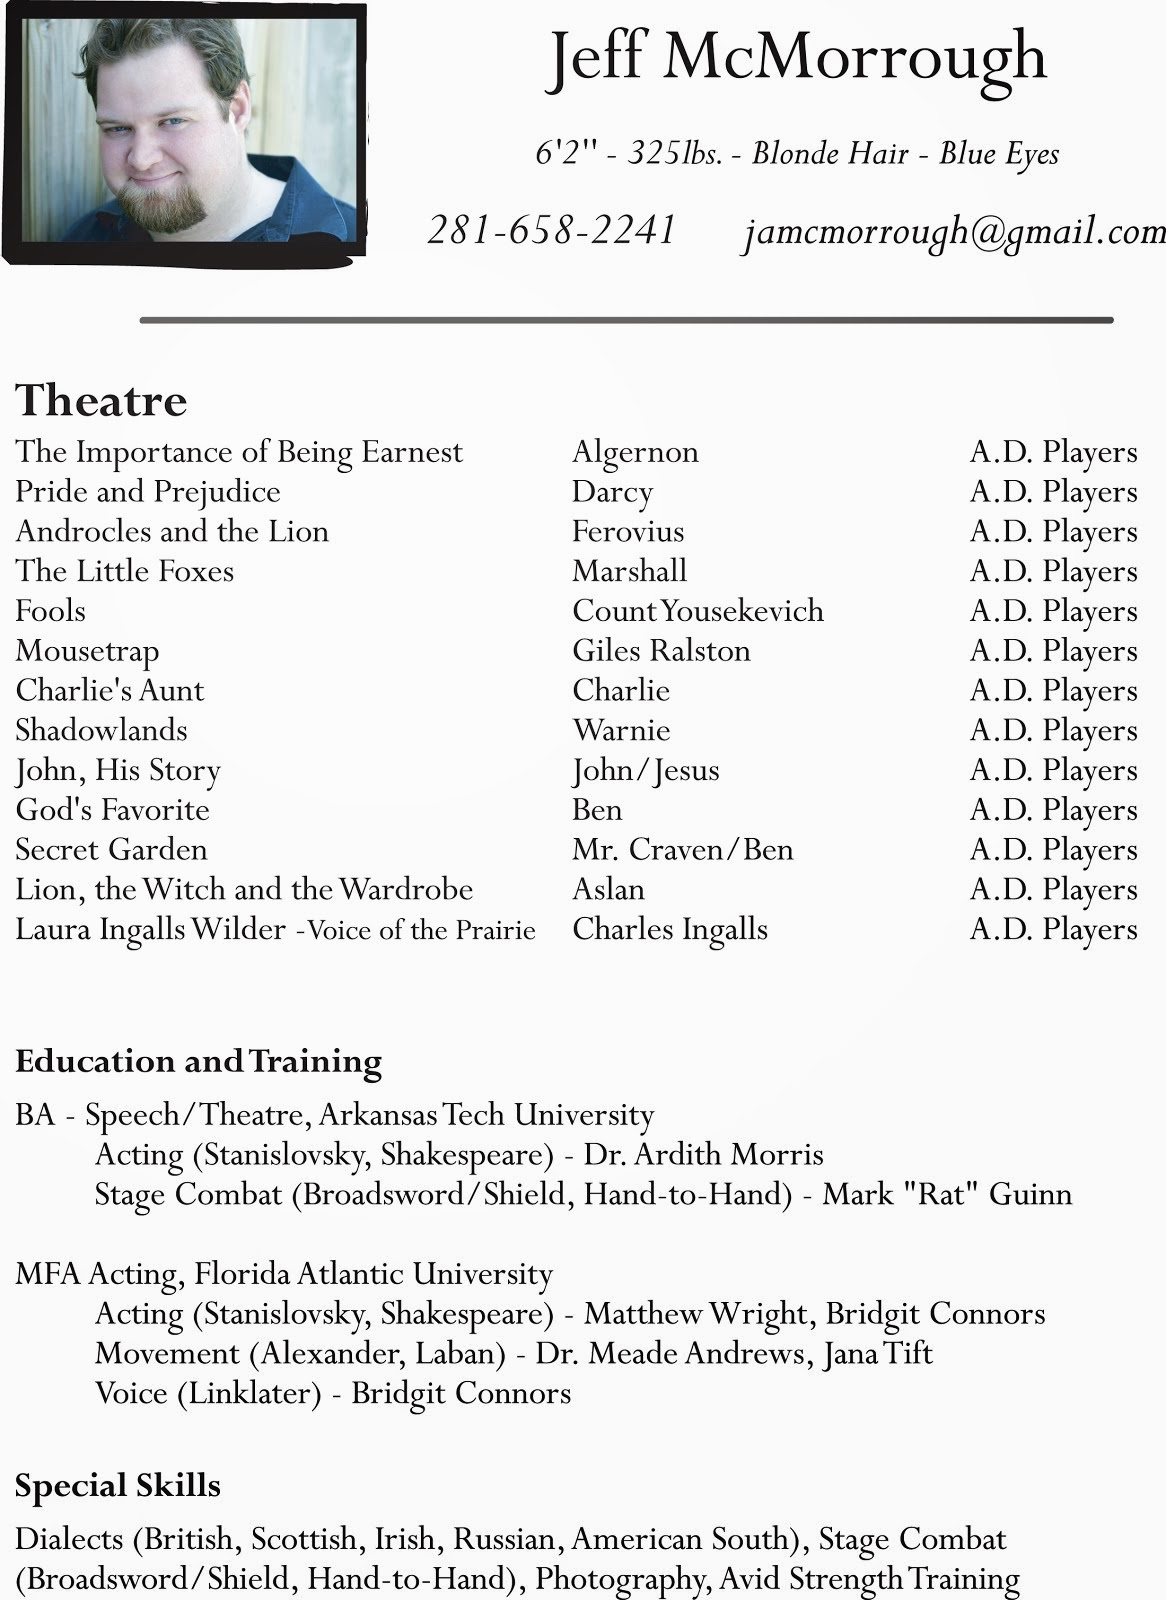 Acting Resume S Makeup Artist Resume S Acting Resume For Acting Theatre Resume  Beginner Acting Resume  Beginner Actor Resume